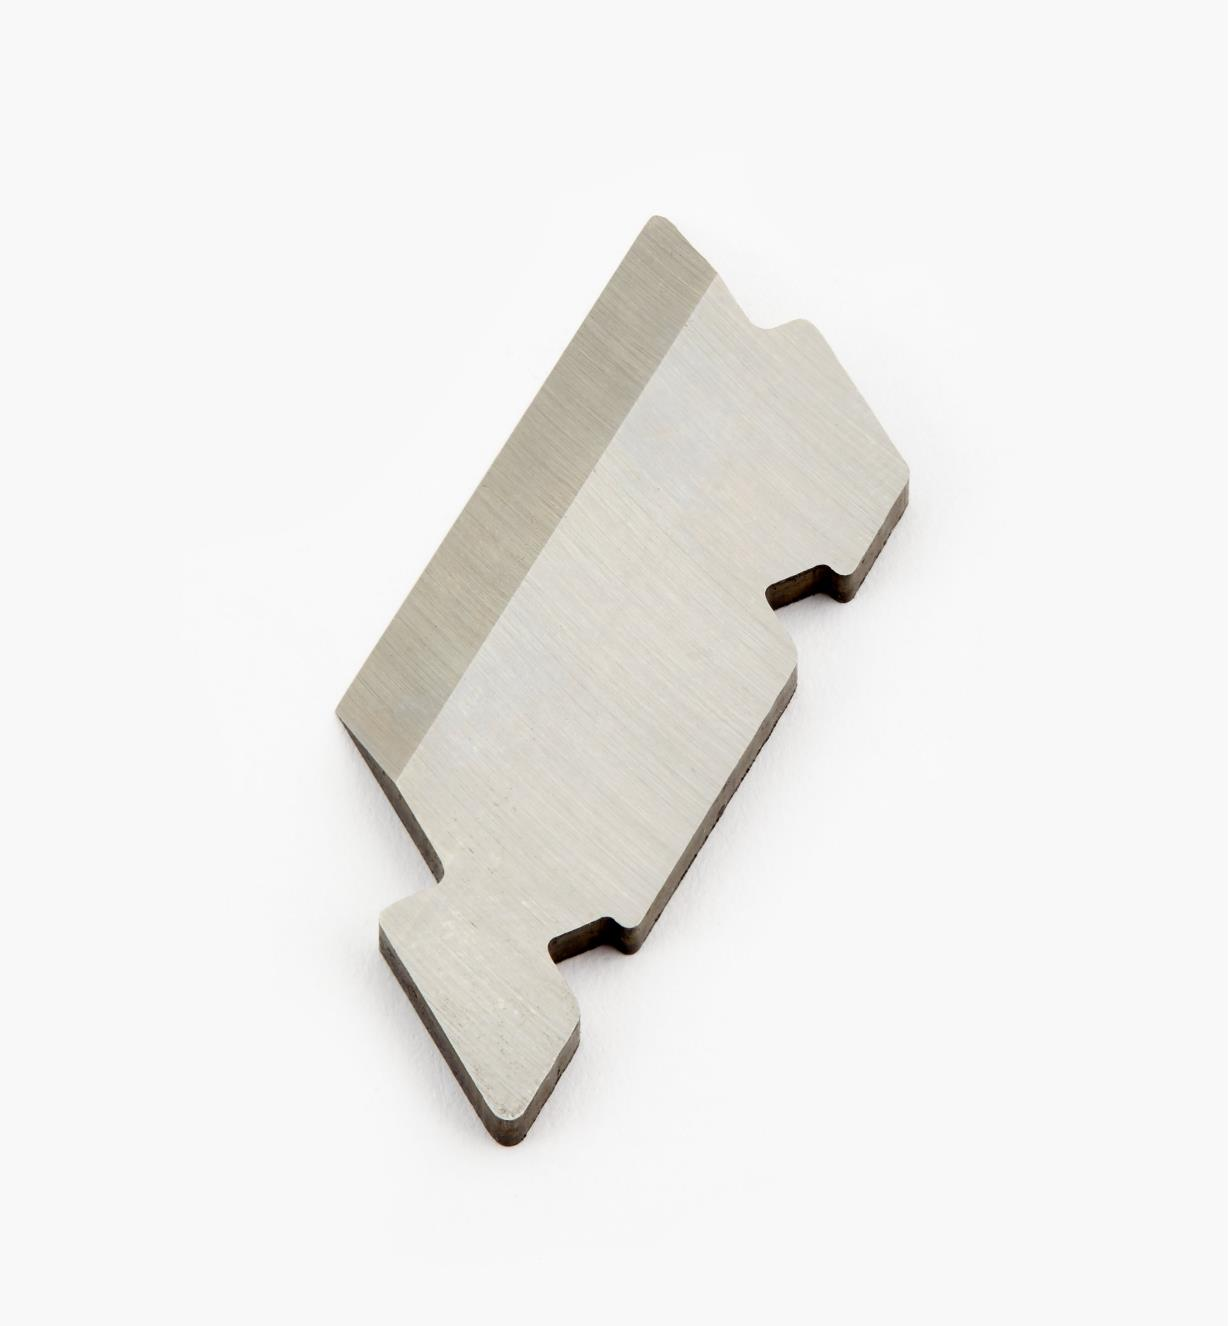 15P1502 - Replacement Blade